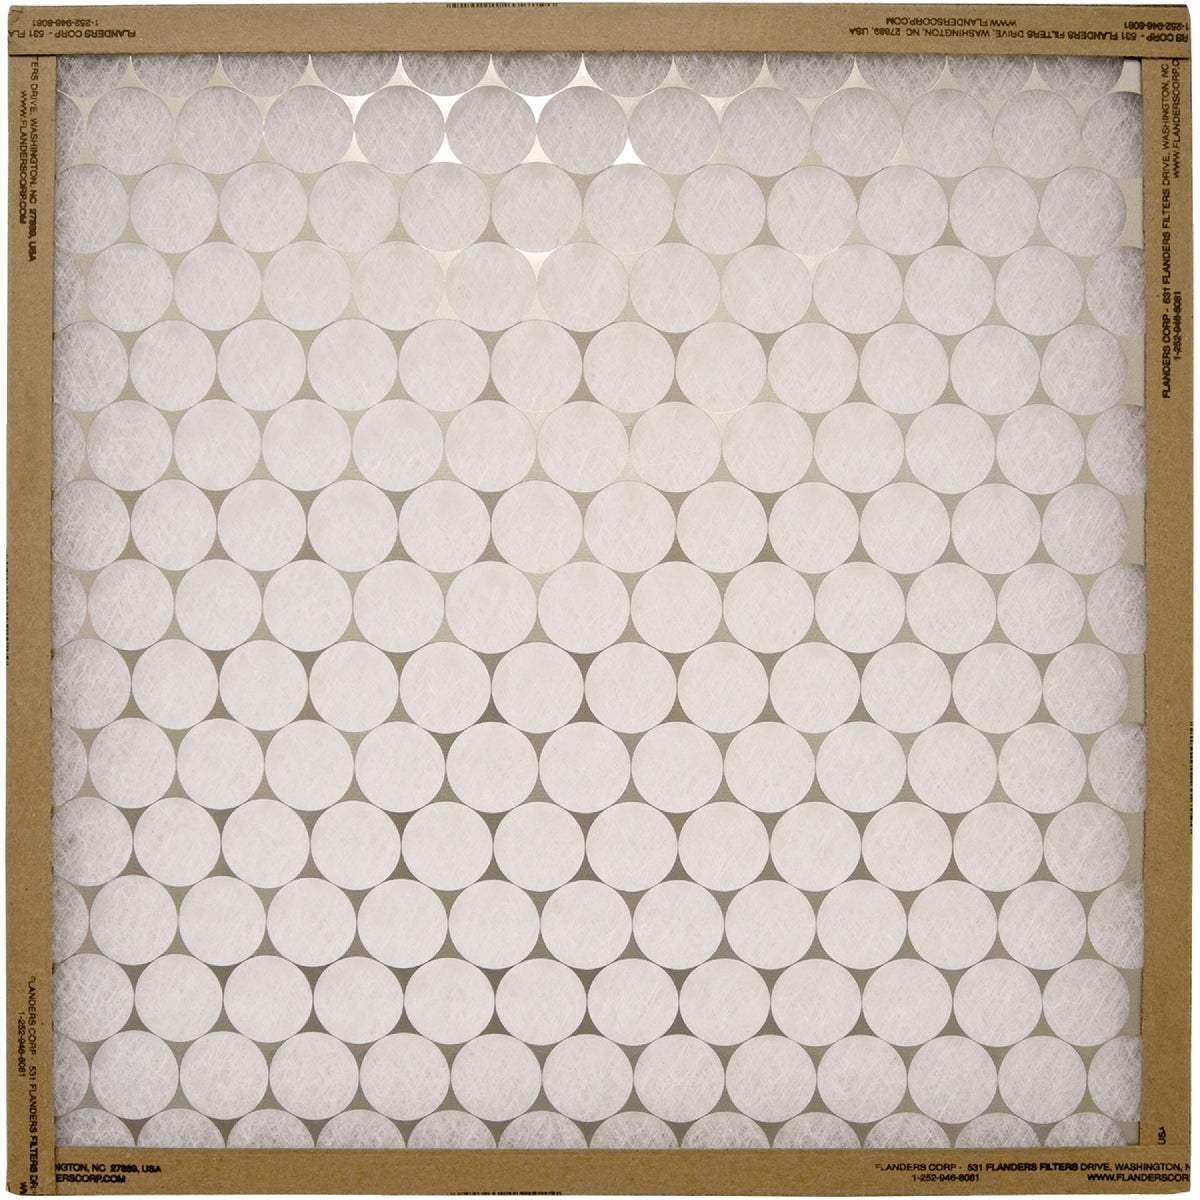 16X16 FURNACE FILTER - 10255.011616 by Flanders Corp